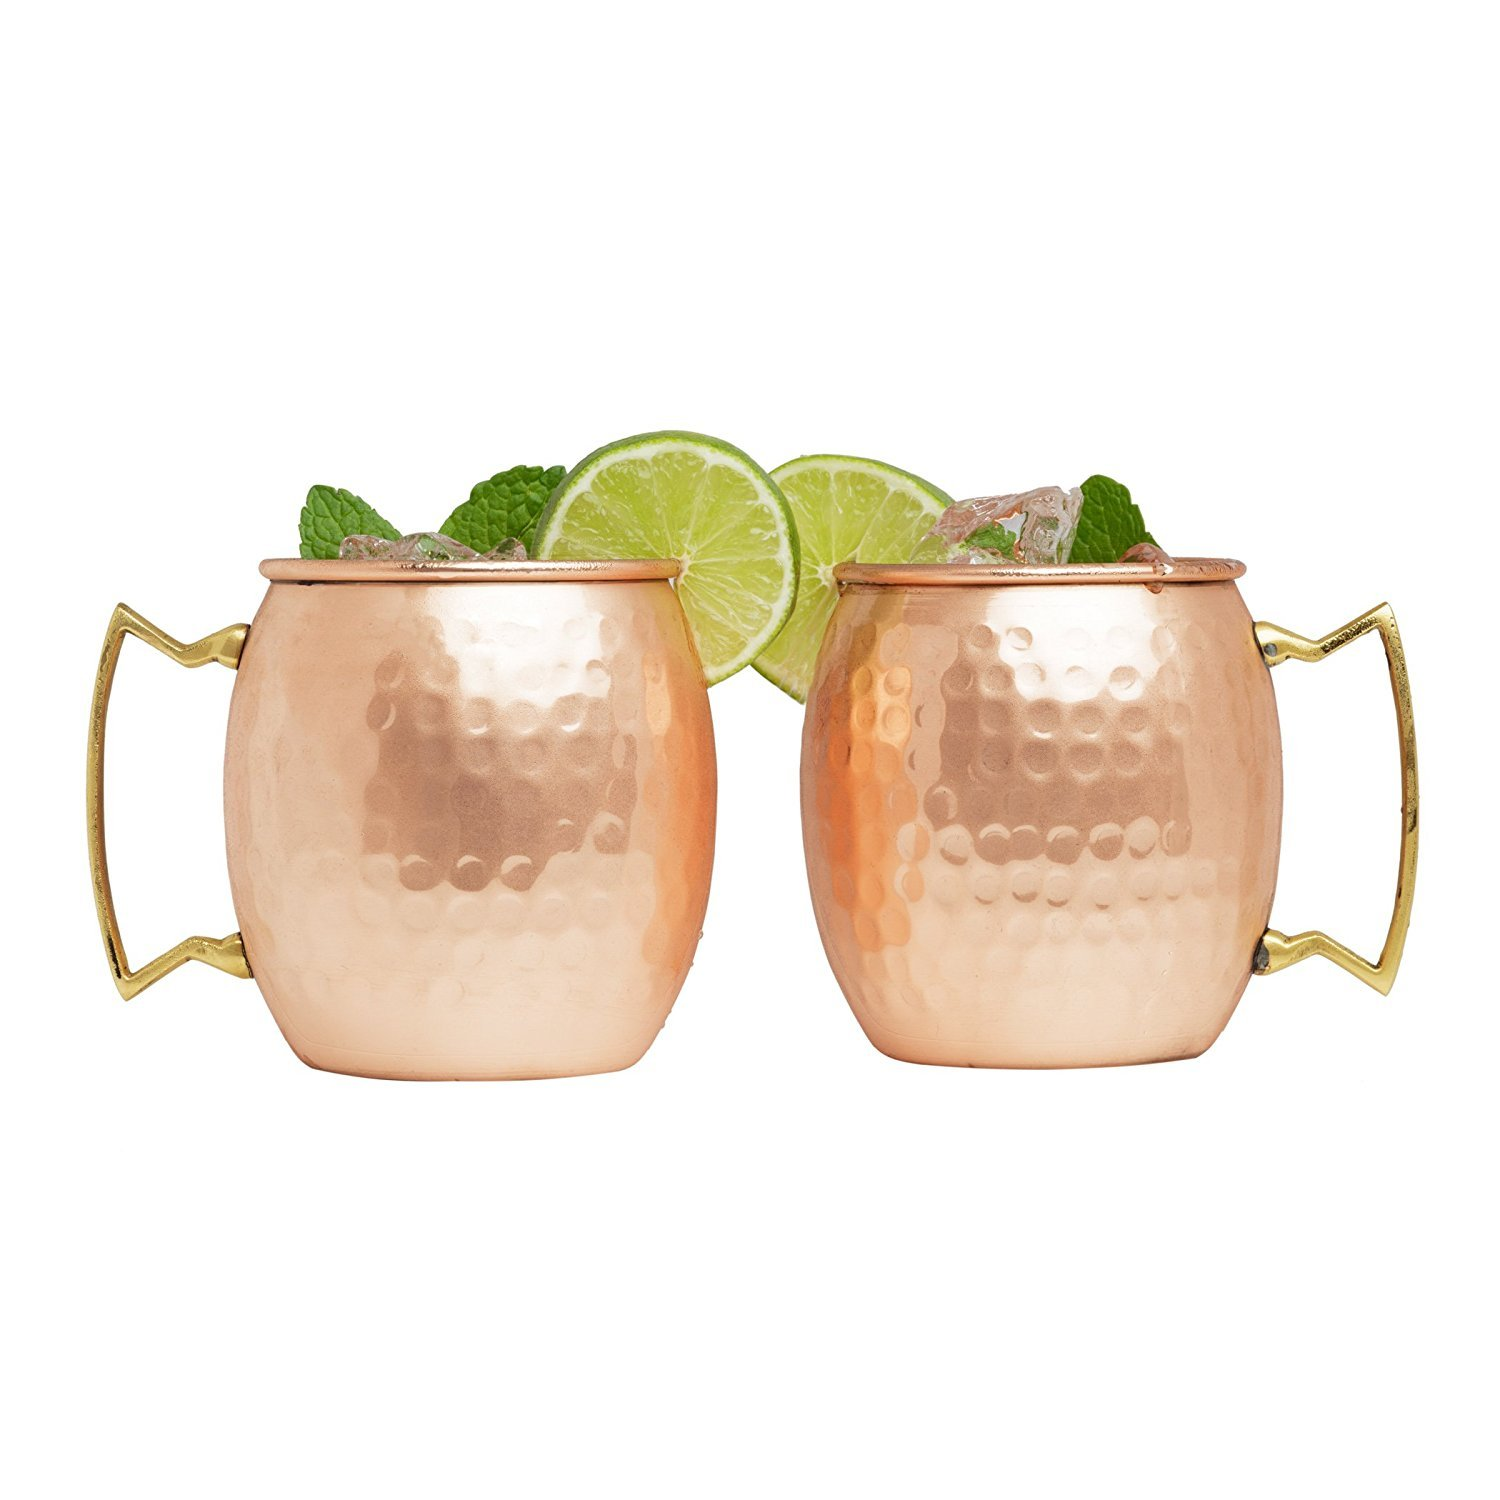 Kitchen Science Moscow Mule Copper Mugs 16 Ounce with 8 Straws and Jigger Set by Kitchen Science (Image #5)